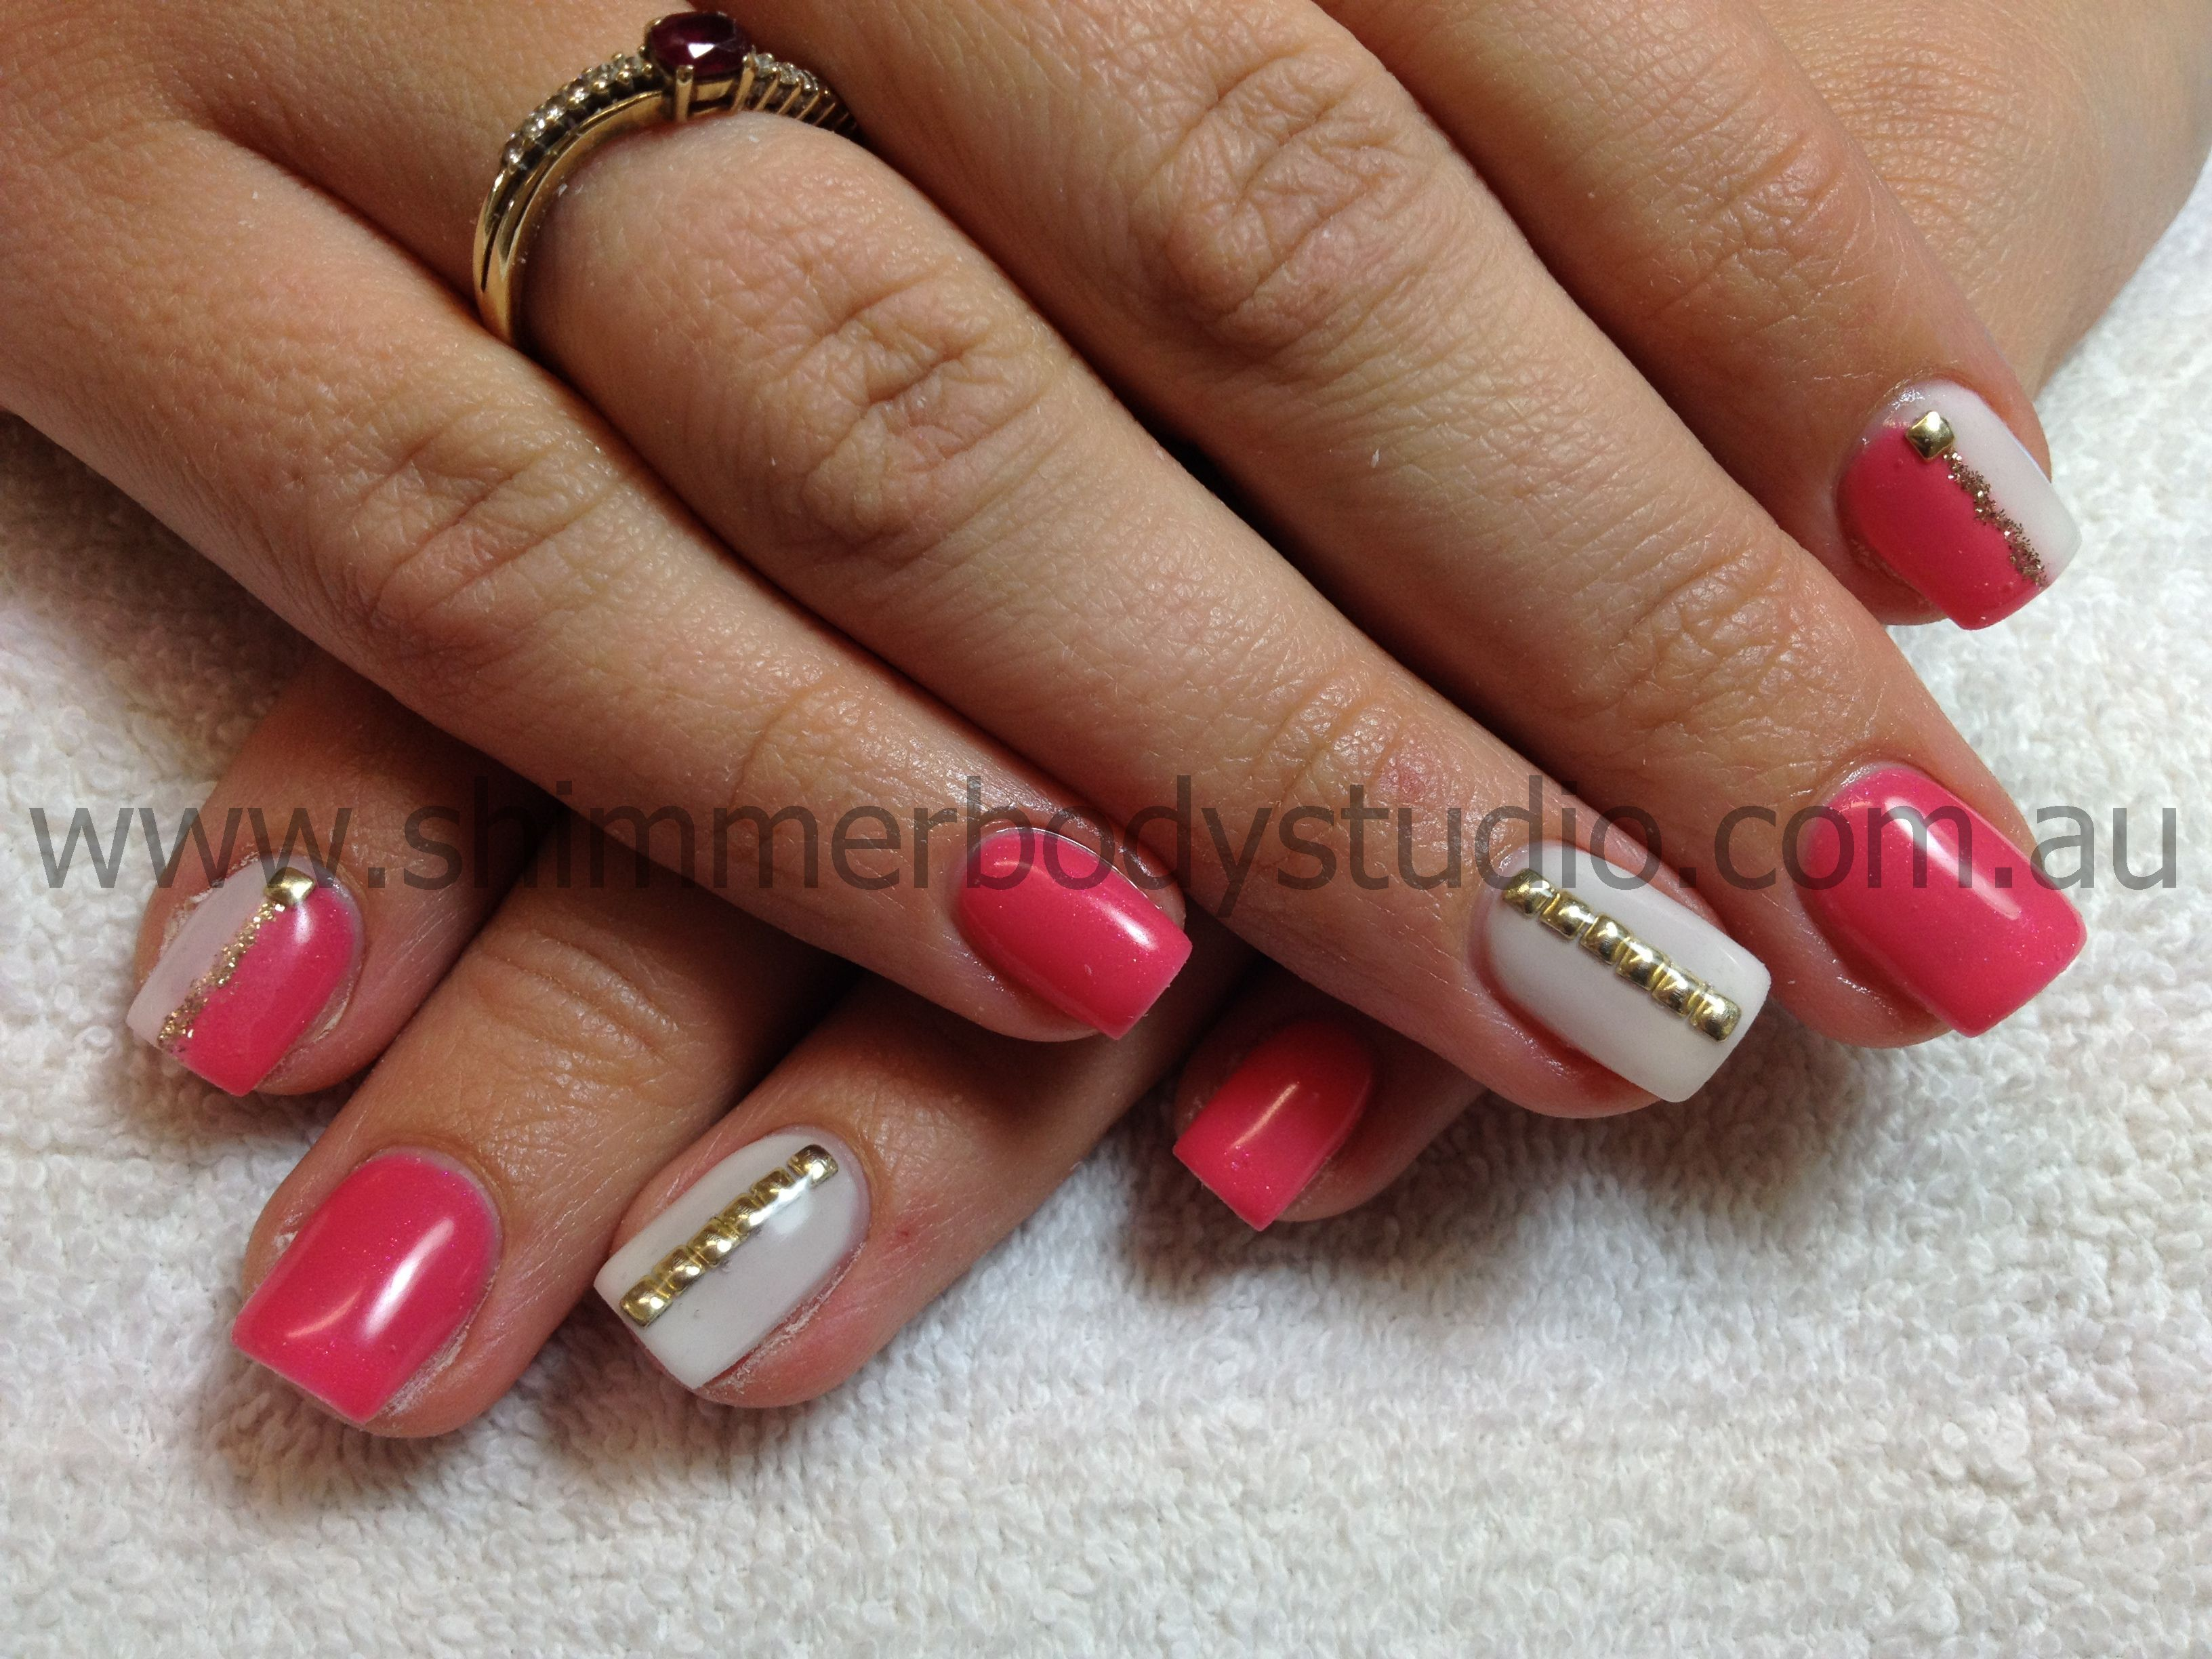 Gel nails, coral and white nails, gold studs, nail art. Shimmer Body ...